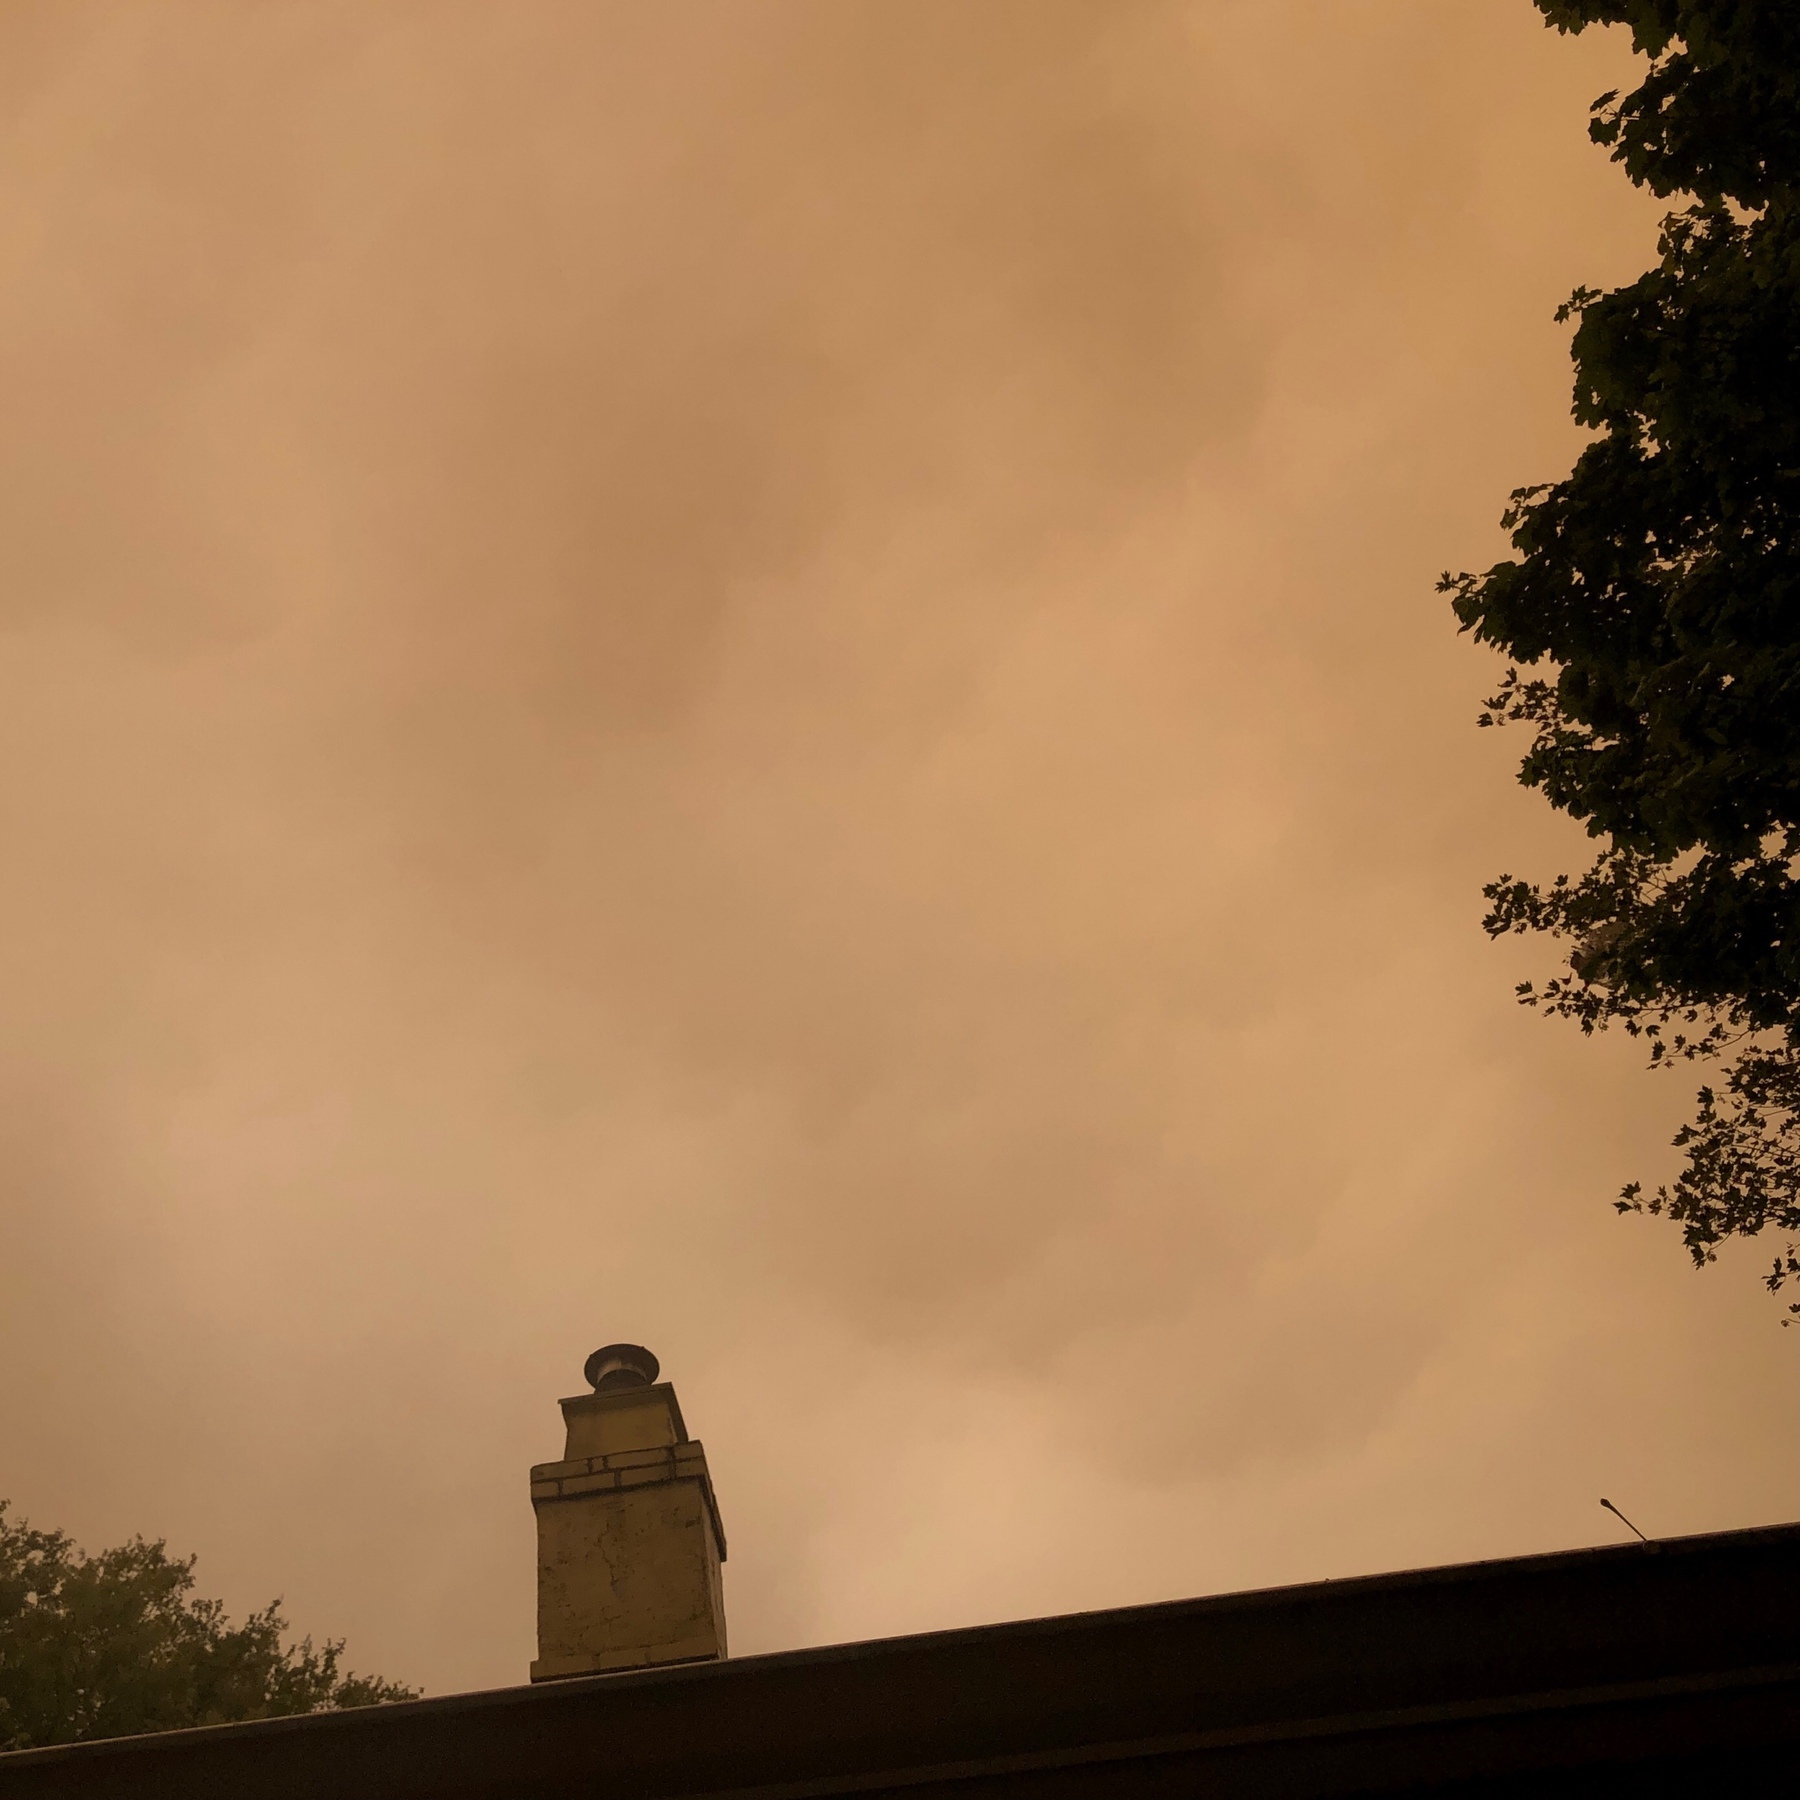 Pale orange sky due to Oregon wildfires